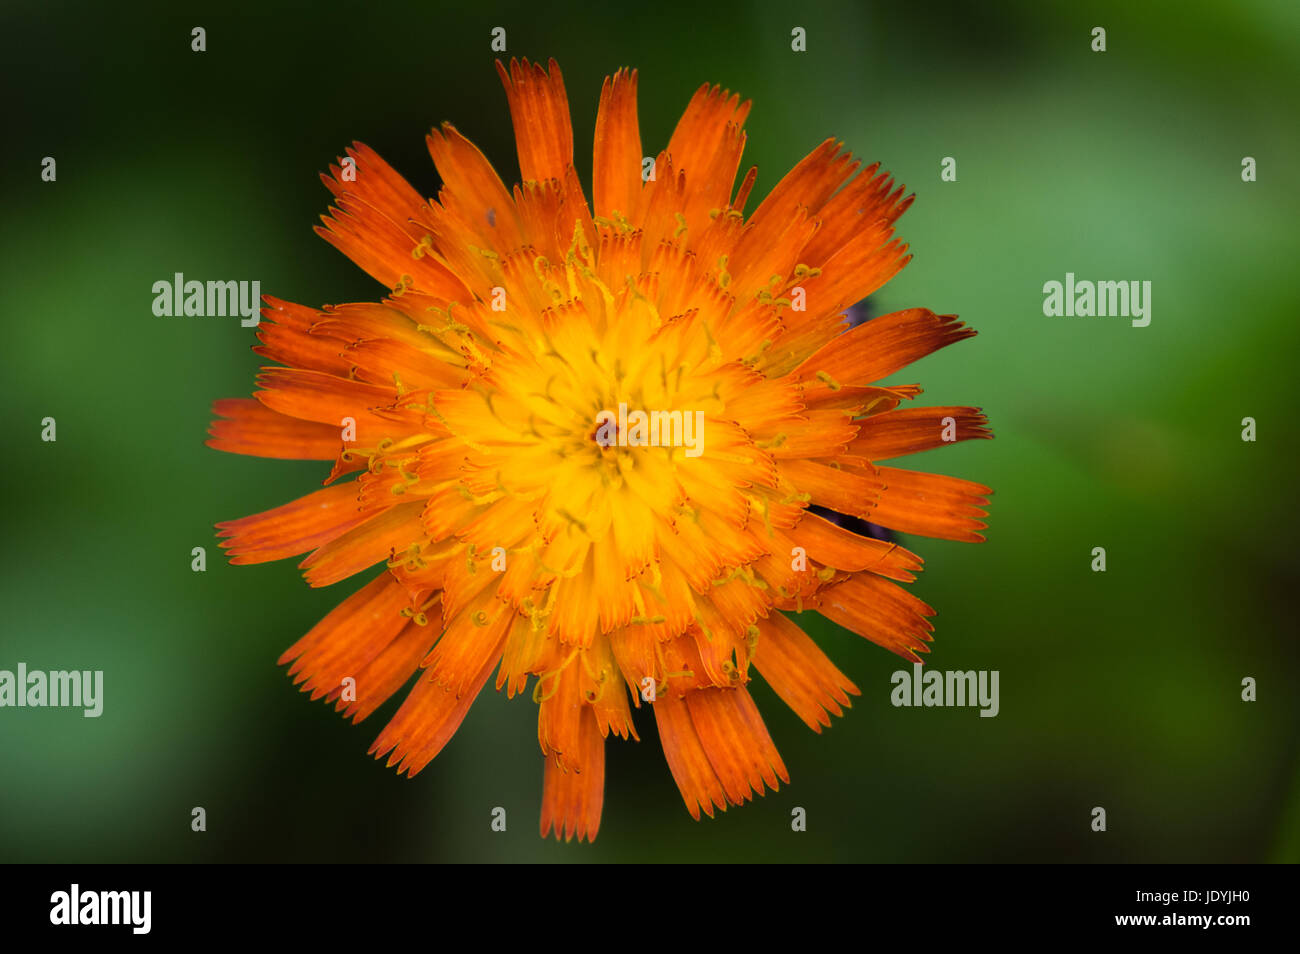 Close up shot of hawkweed or hieracium, an invasive orange wild sunflower shot in the Dolly Sods Wilderness Area - Stock Image